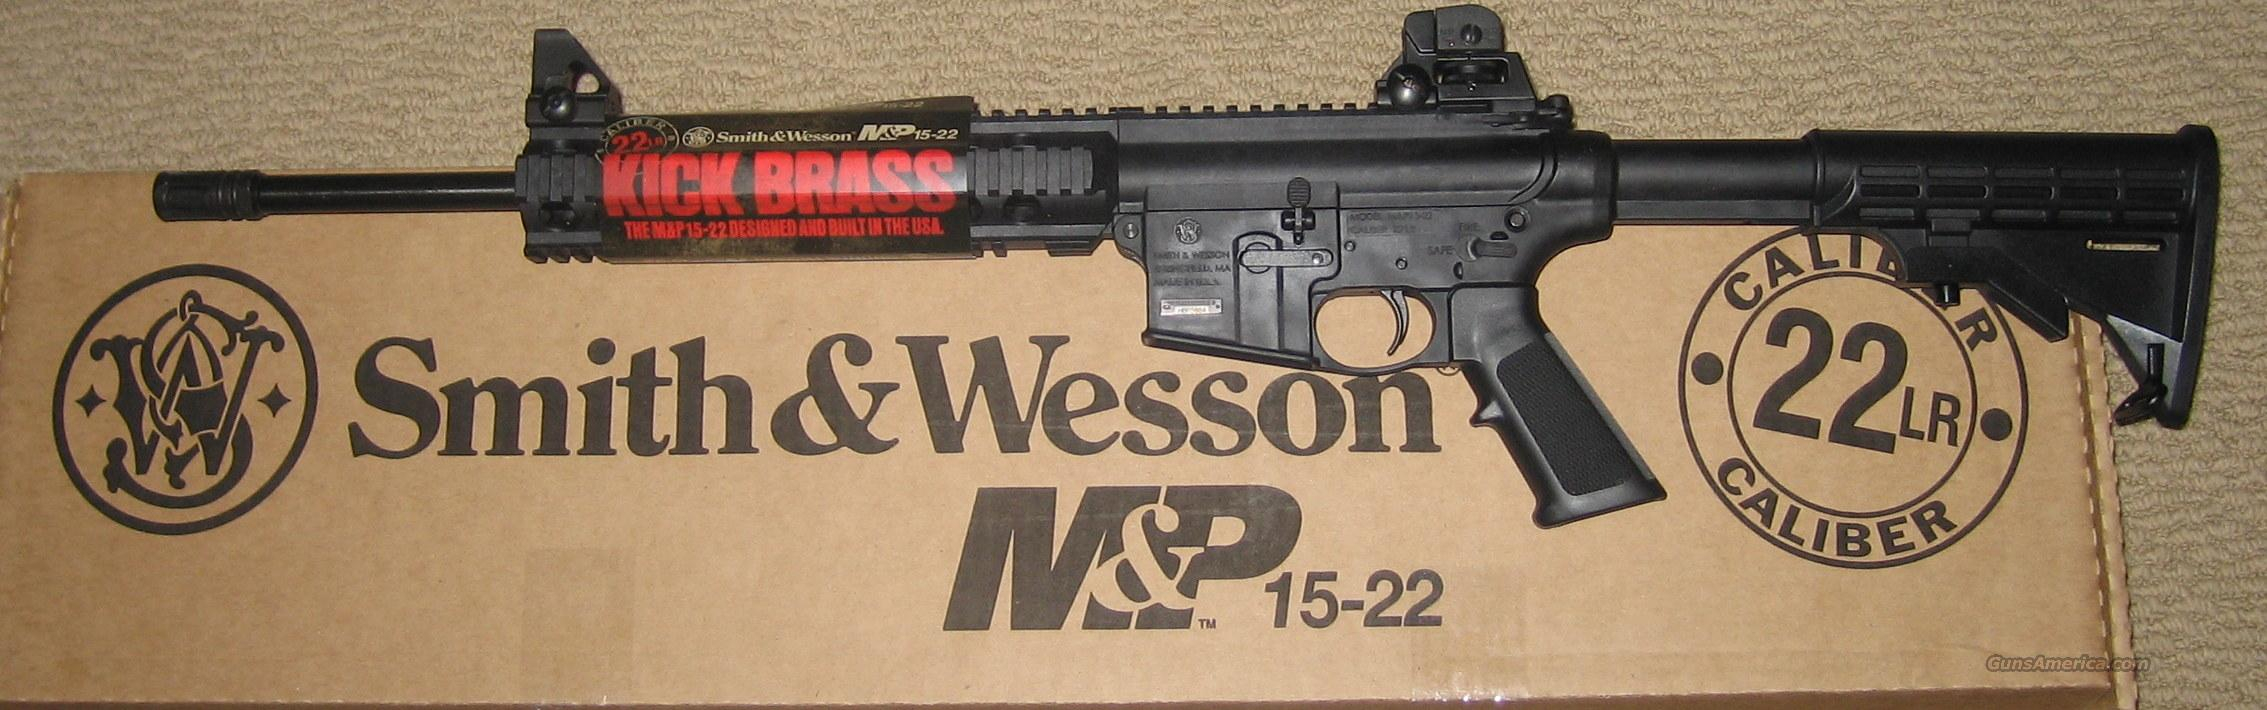 Smith & Wesson M&P 15-22 A1 Sights 22 LR 25+1 AR-15 style AR15  Guns > Rifles > Smith & Wesson Rifles > M&P